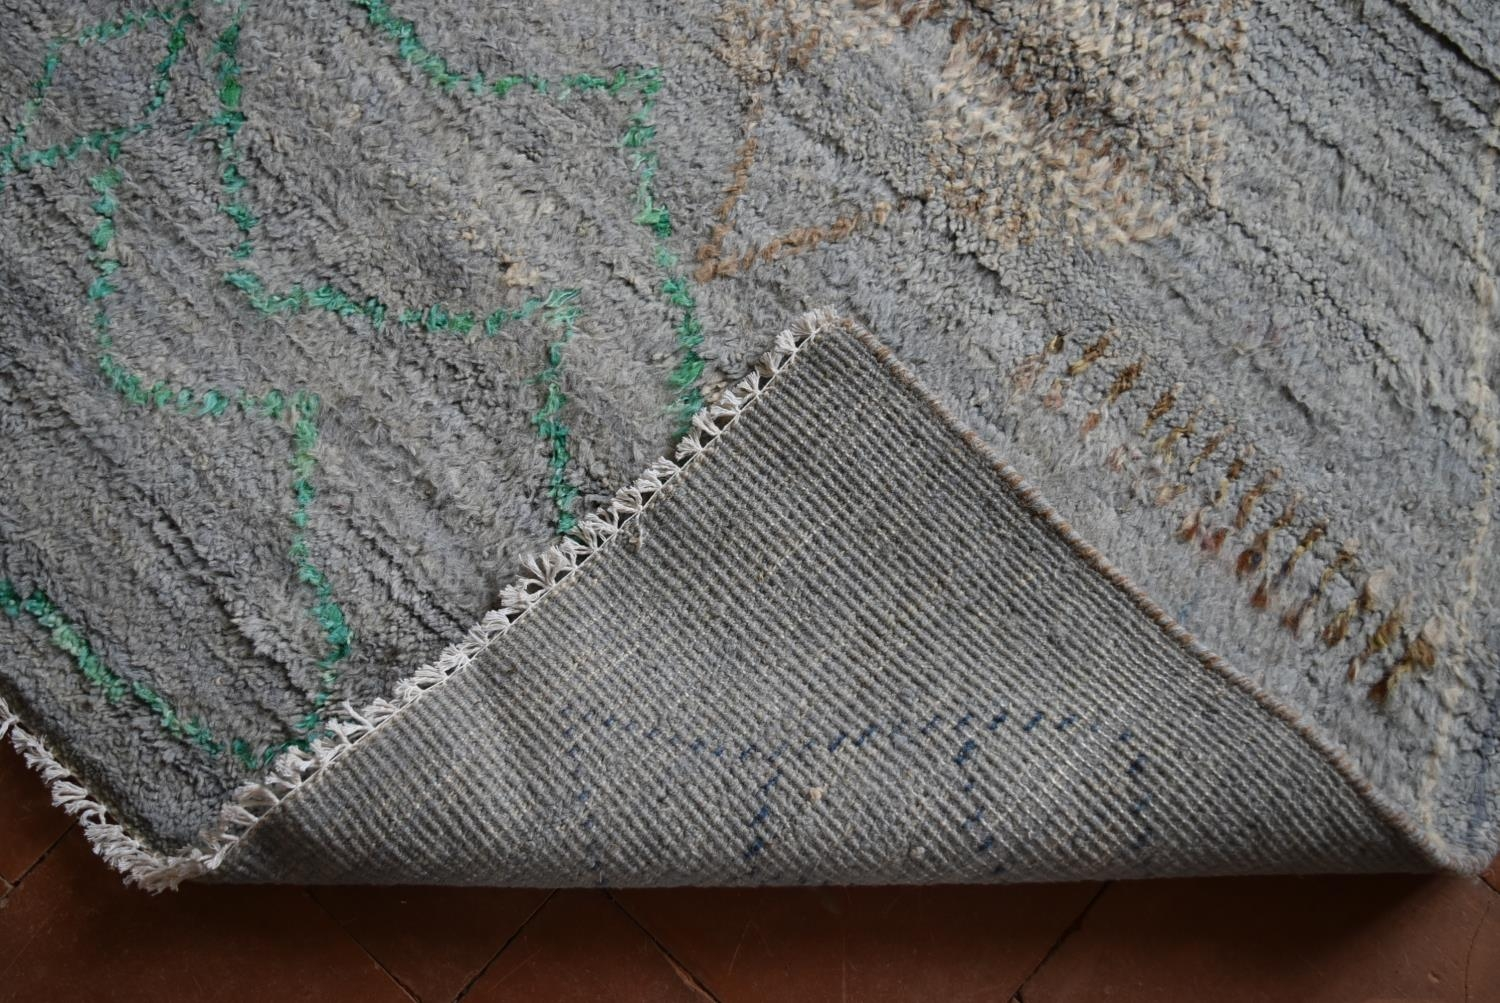 A Moroccan style rug with abstract diamond patterns across a powder blue ground. L.245xW.170cm - Image 4 of 4